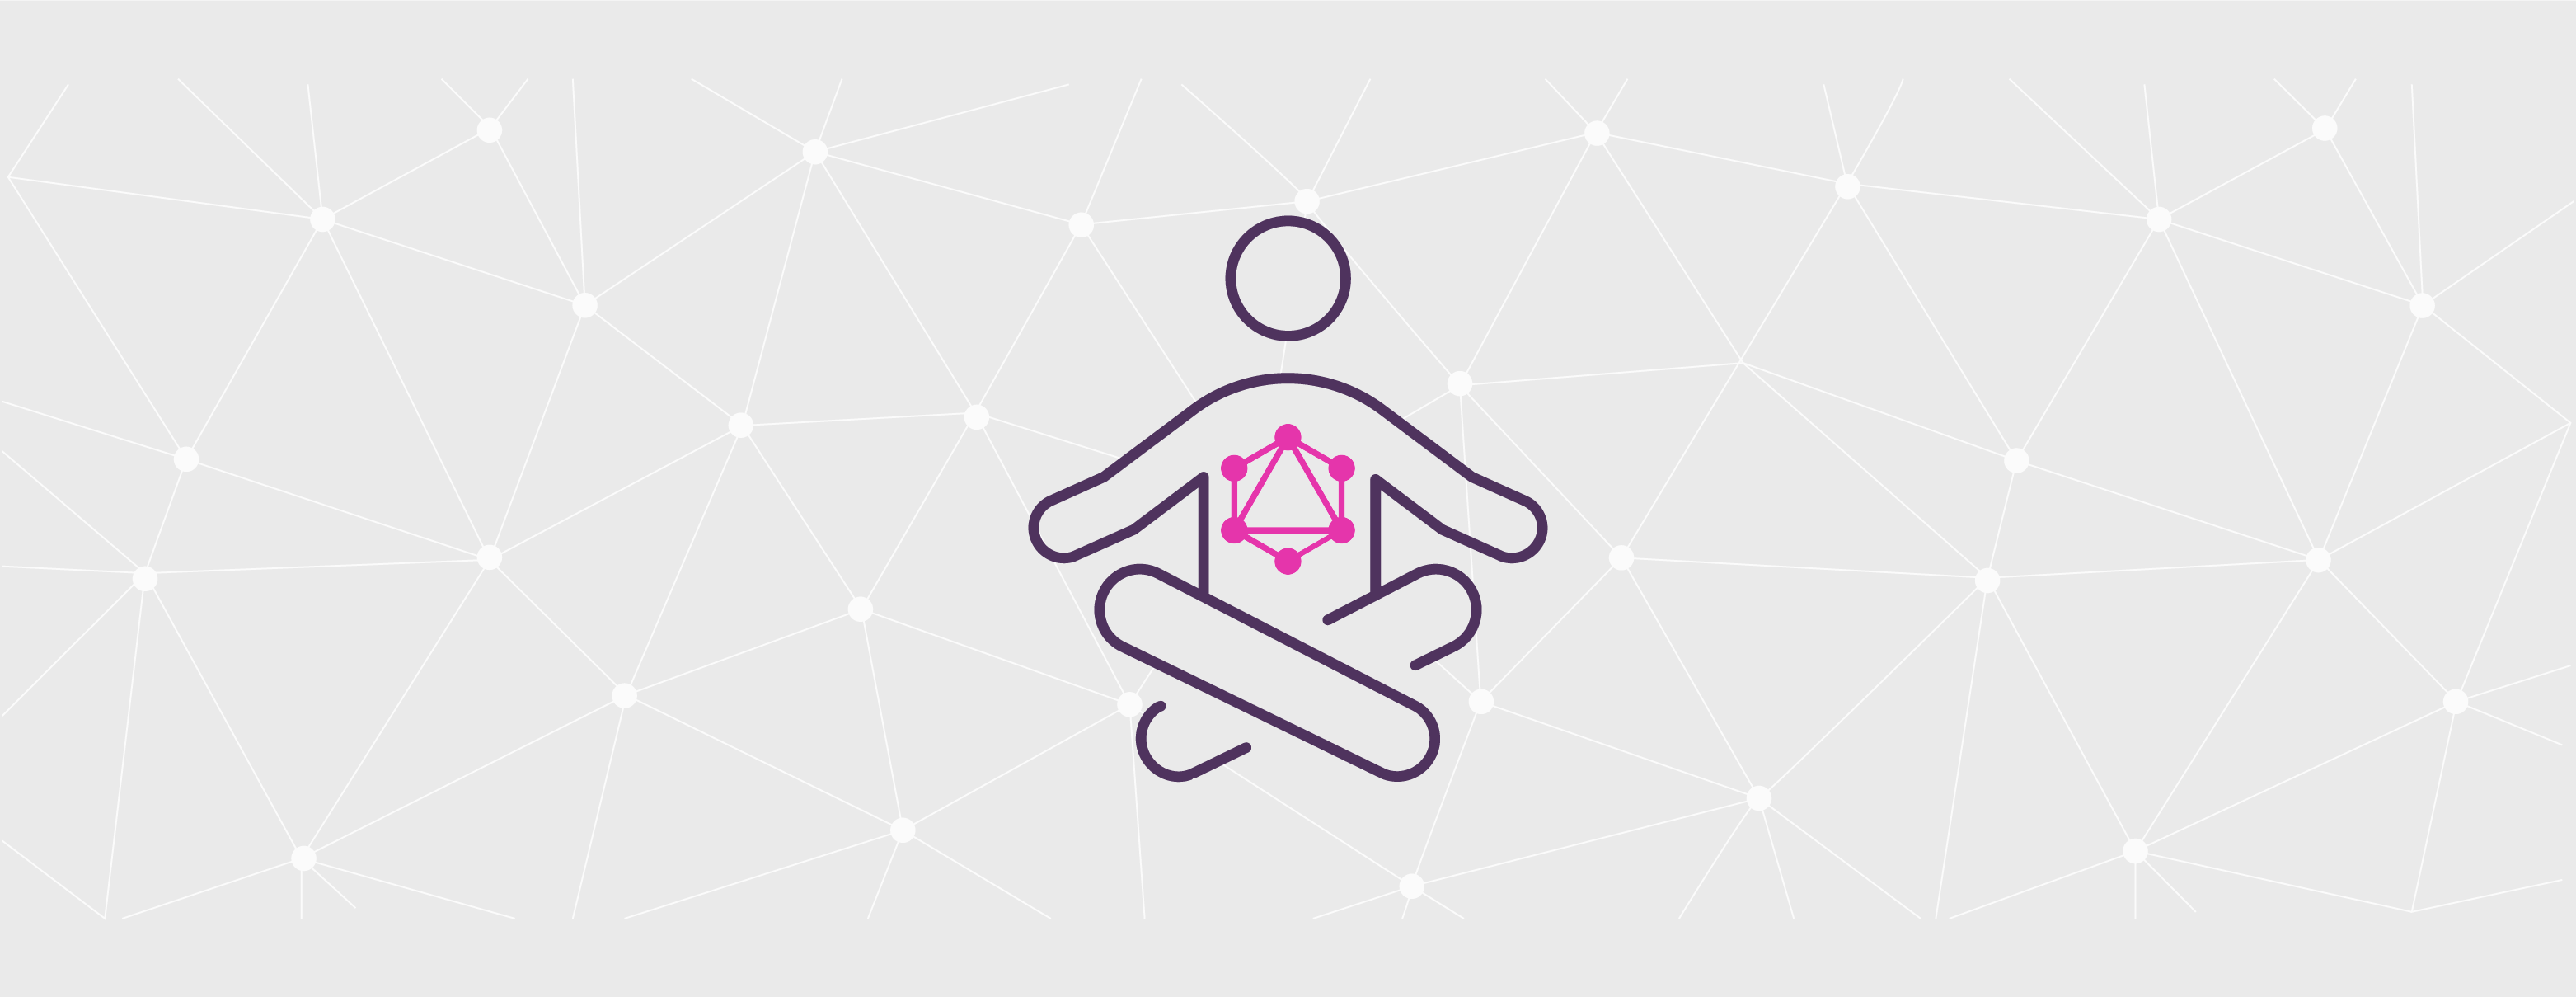 GraphQL-Yoga--Wrapped-REST-Pose-1